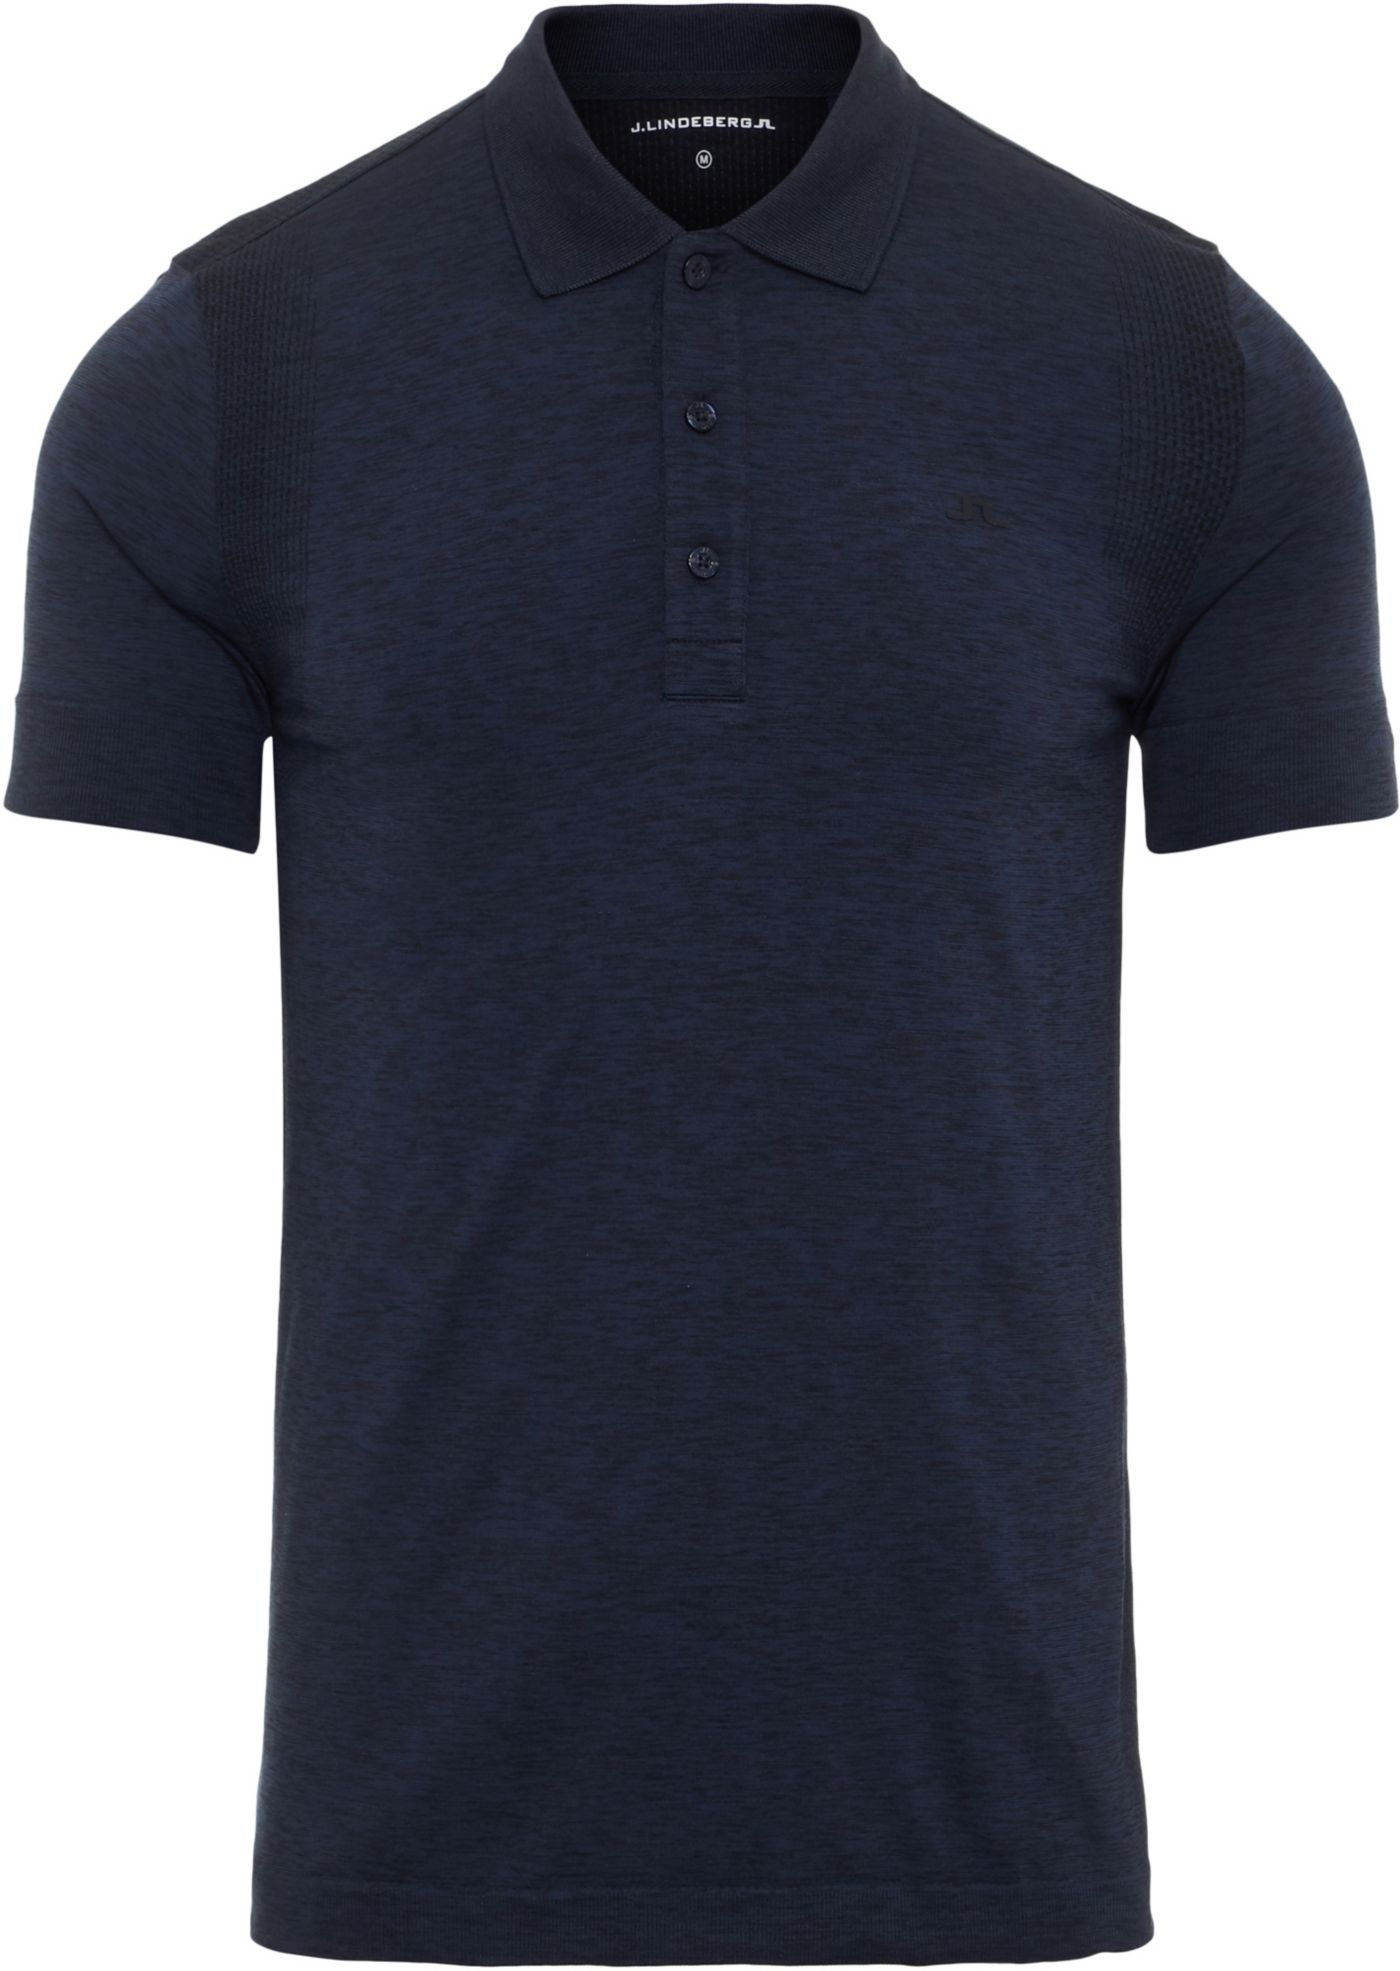 J.Lindeberg Men's Isaac Golf Polo